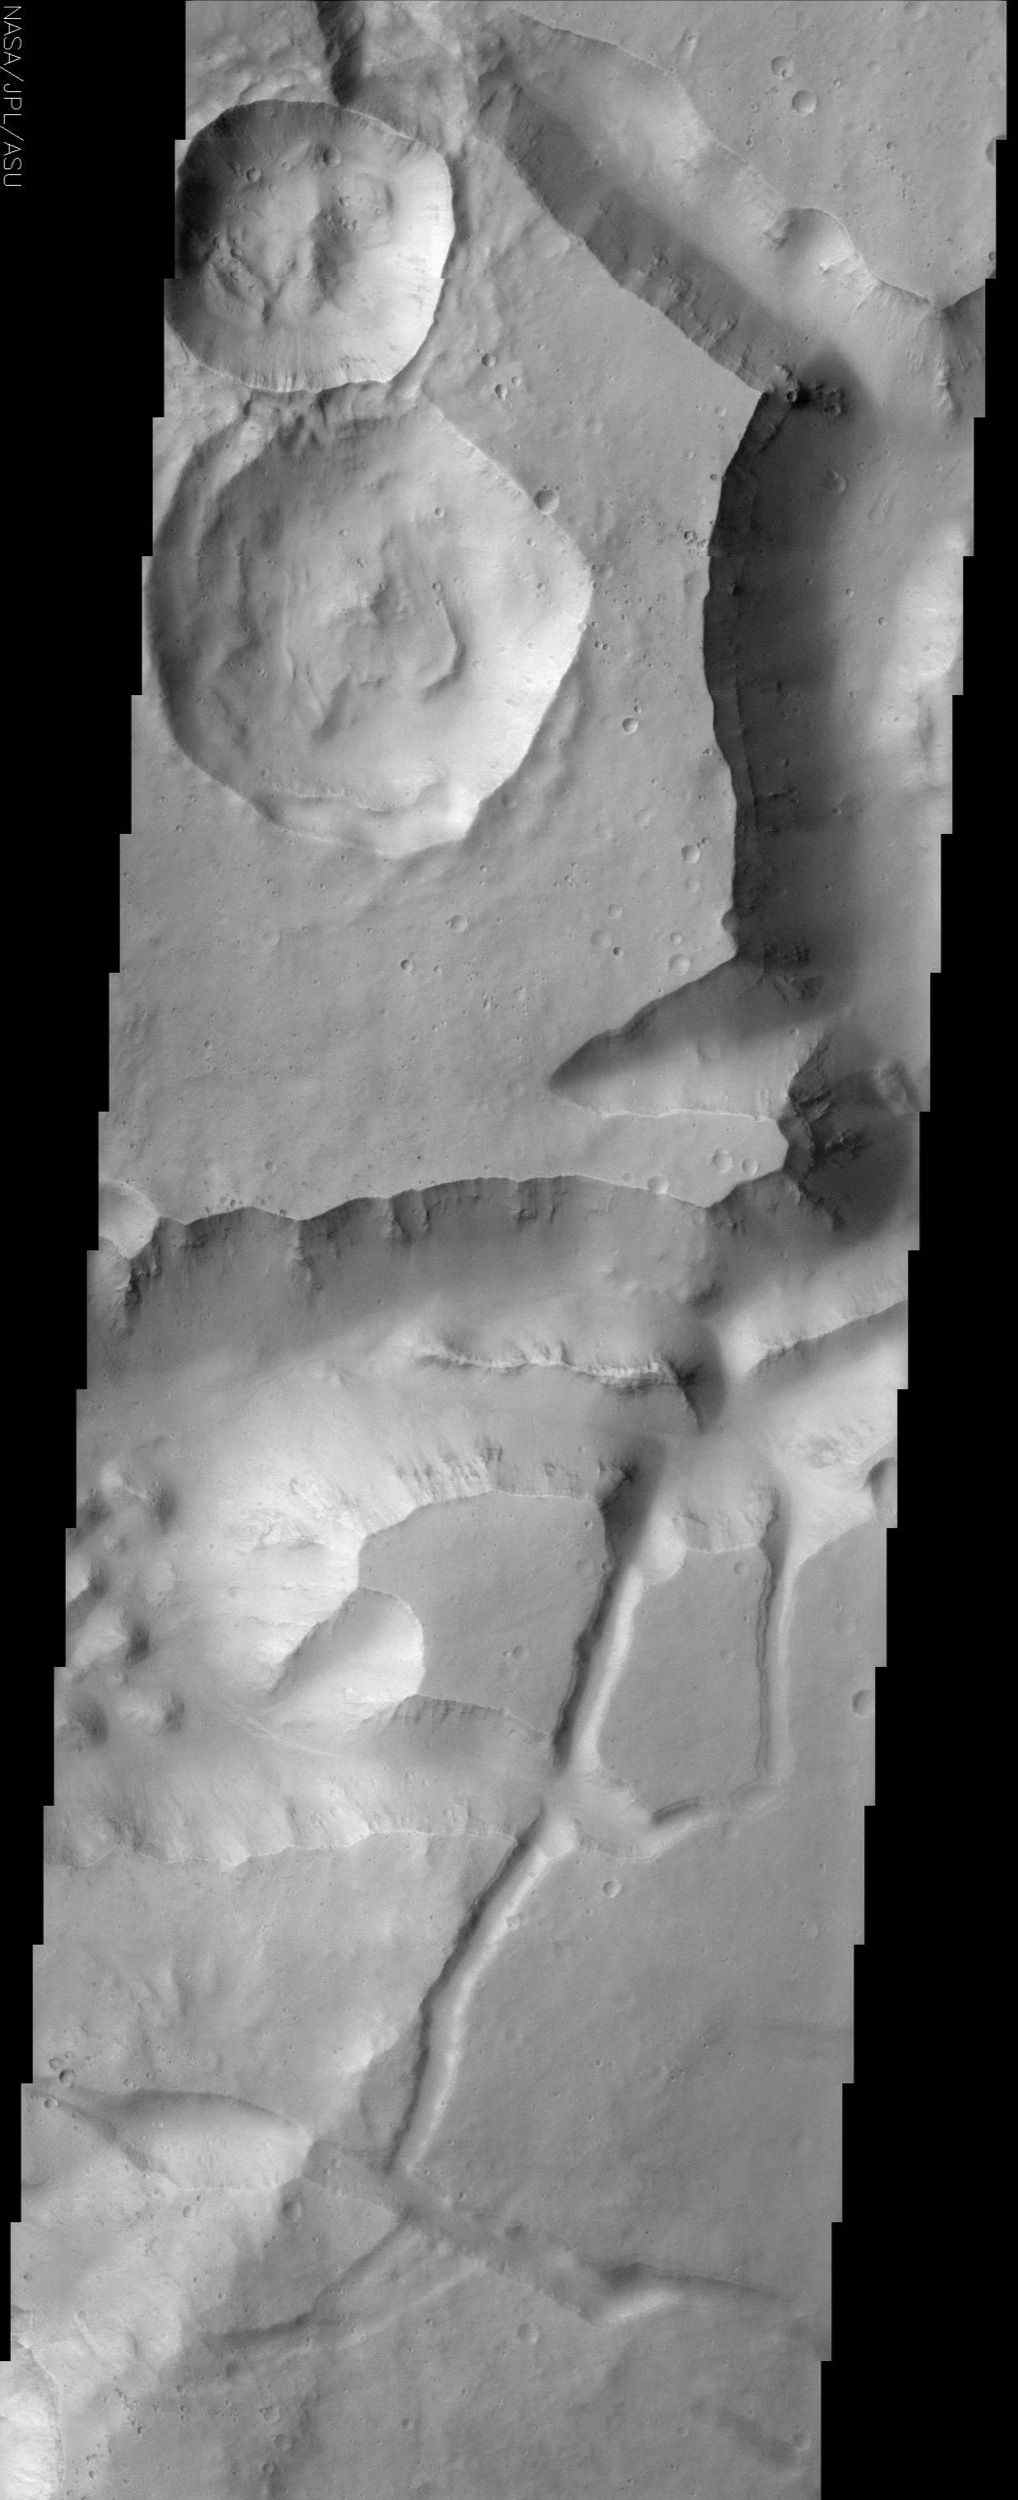 This image from NASA's Mars Odyssey shows a portion of Aureum Chaos located just south of the Martian equator. This fractured landscape contains canyons and mesas with two large impact craters in the upper left.